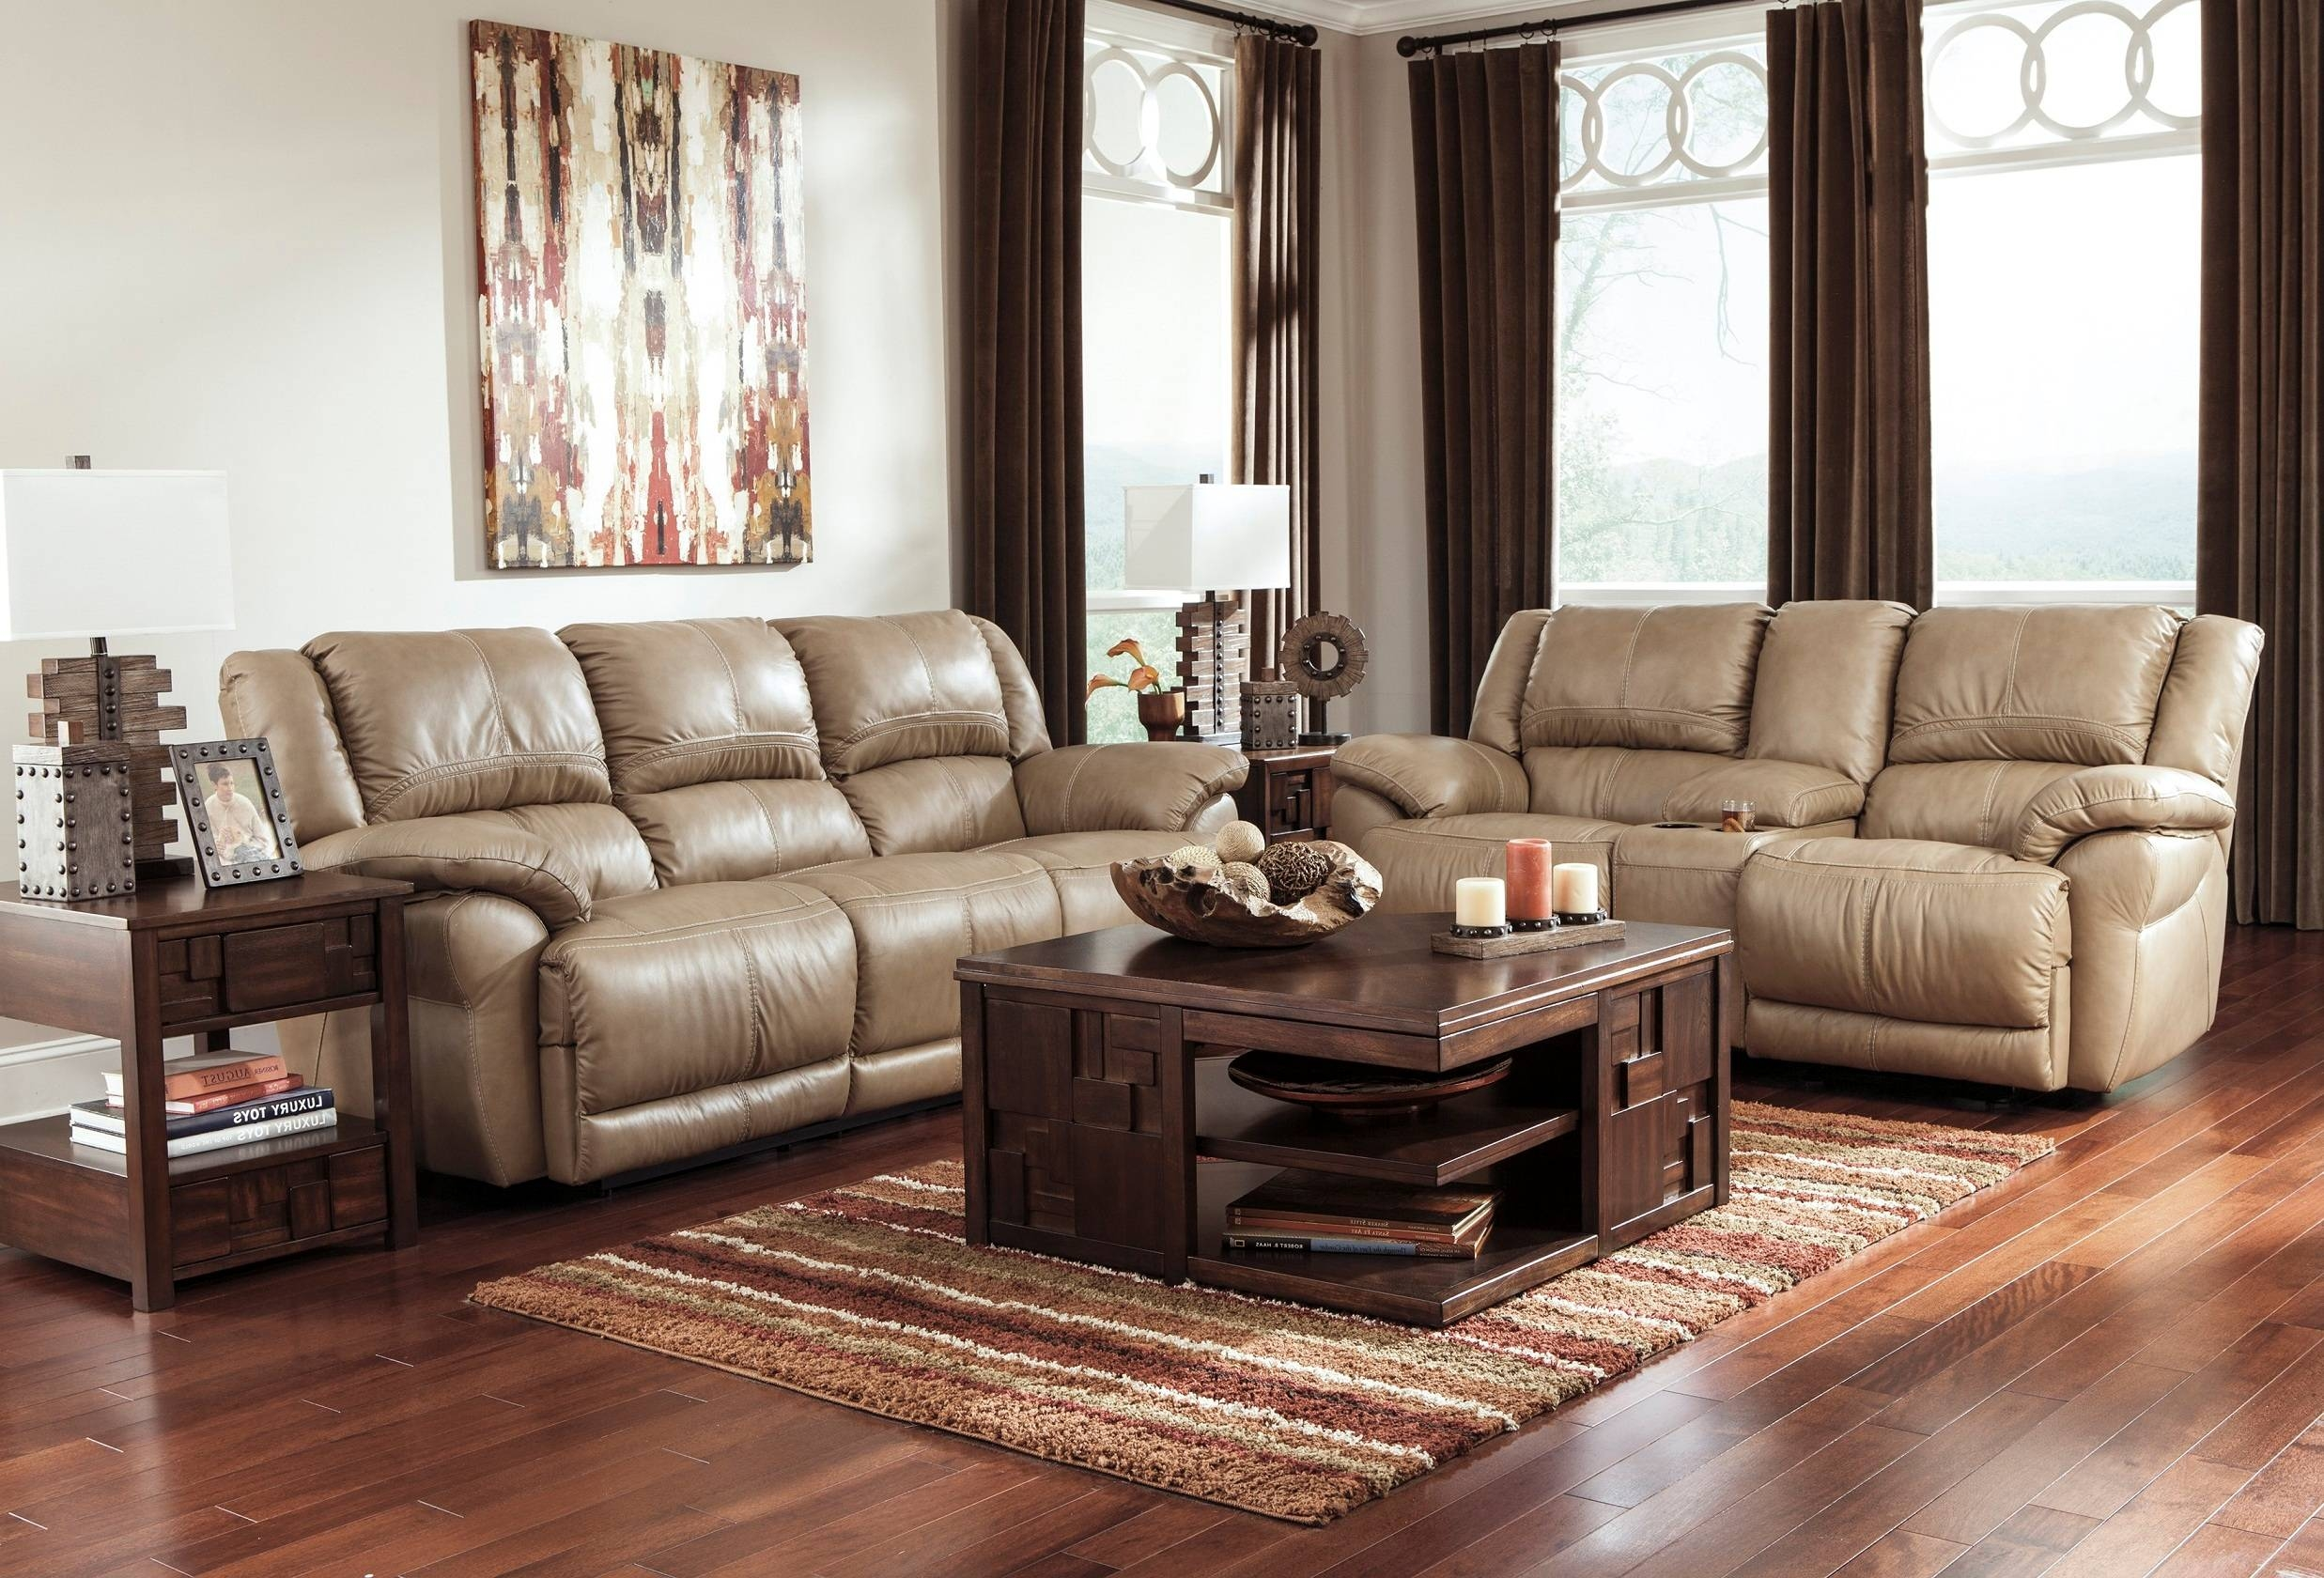 Furniture: Full Grain Leather Sectional | Costco Leather Sofa with regard to Caramel Leather Sofas (Image 6 of 15)